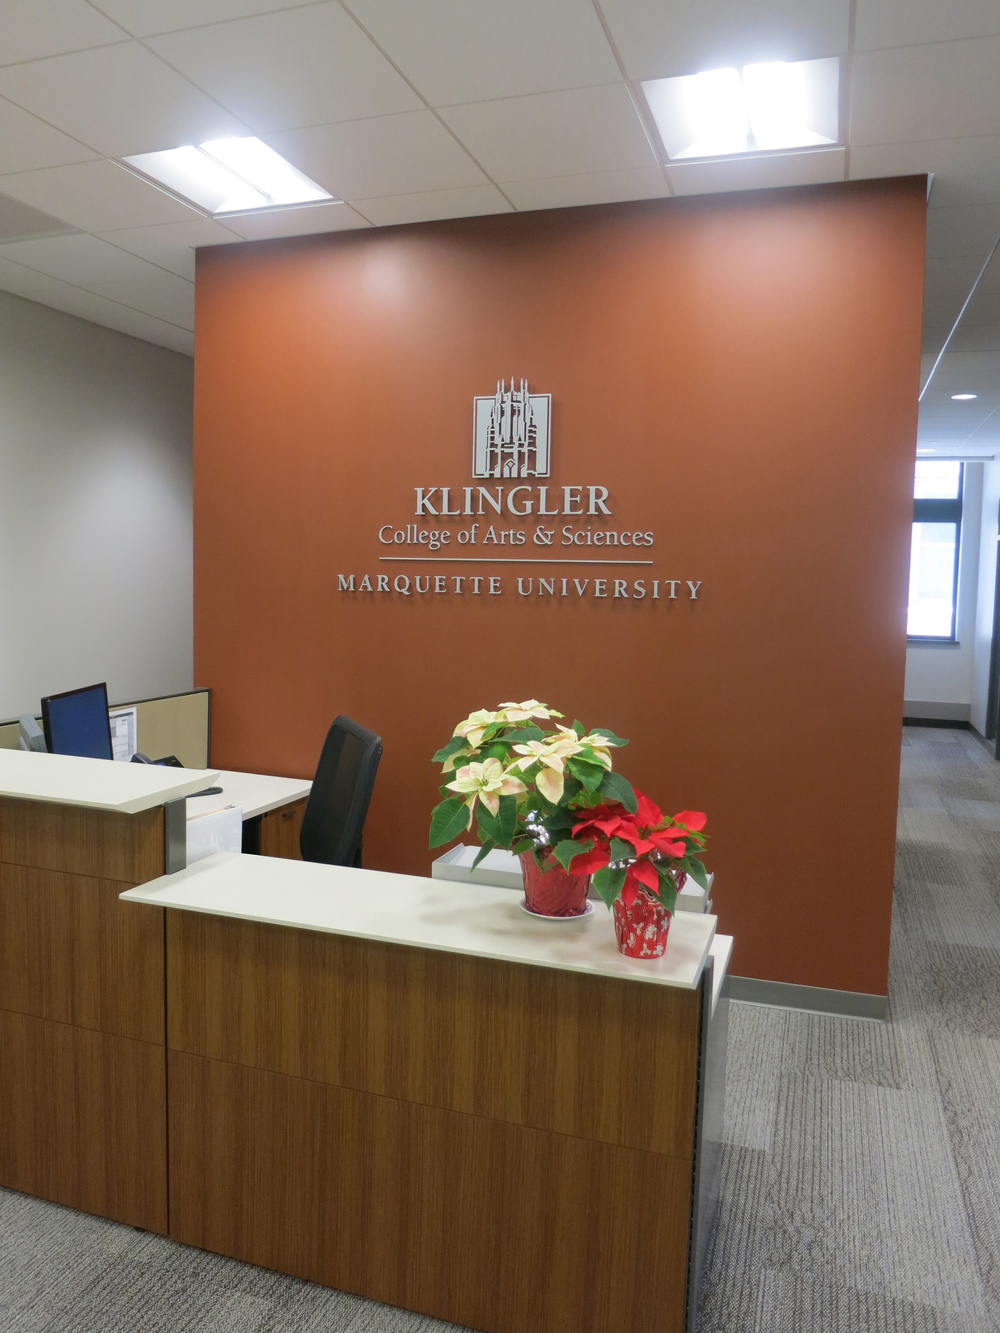 Marquette University - Klinger College of Arts & Sciences   Reception Wall Signage